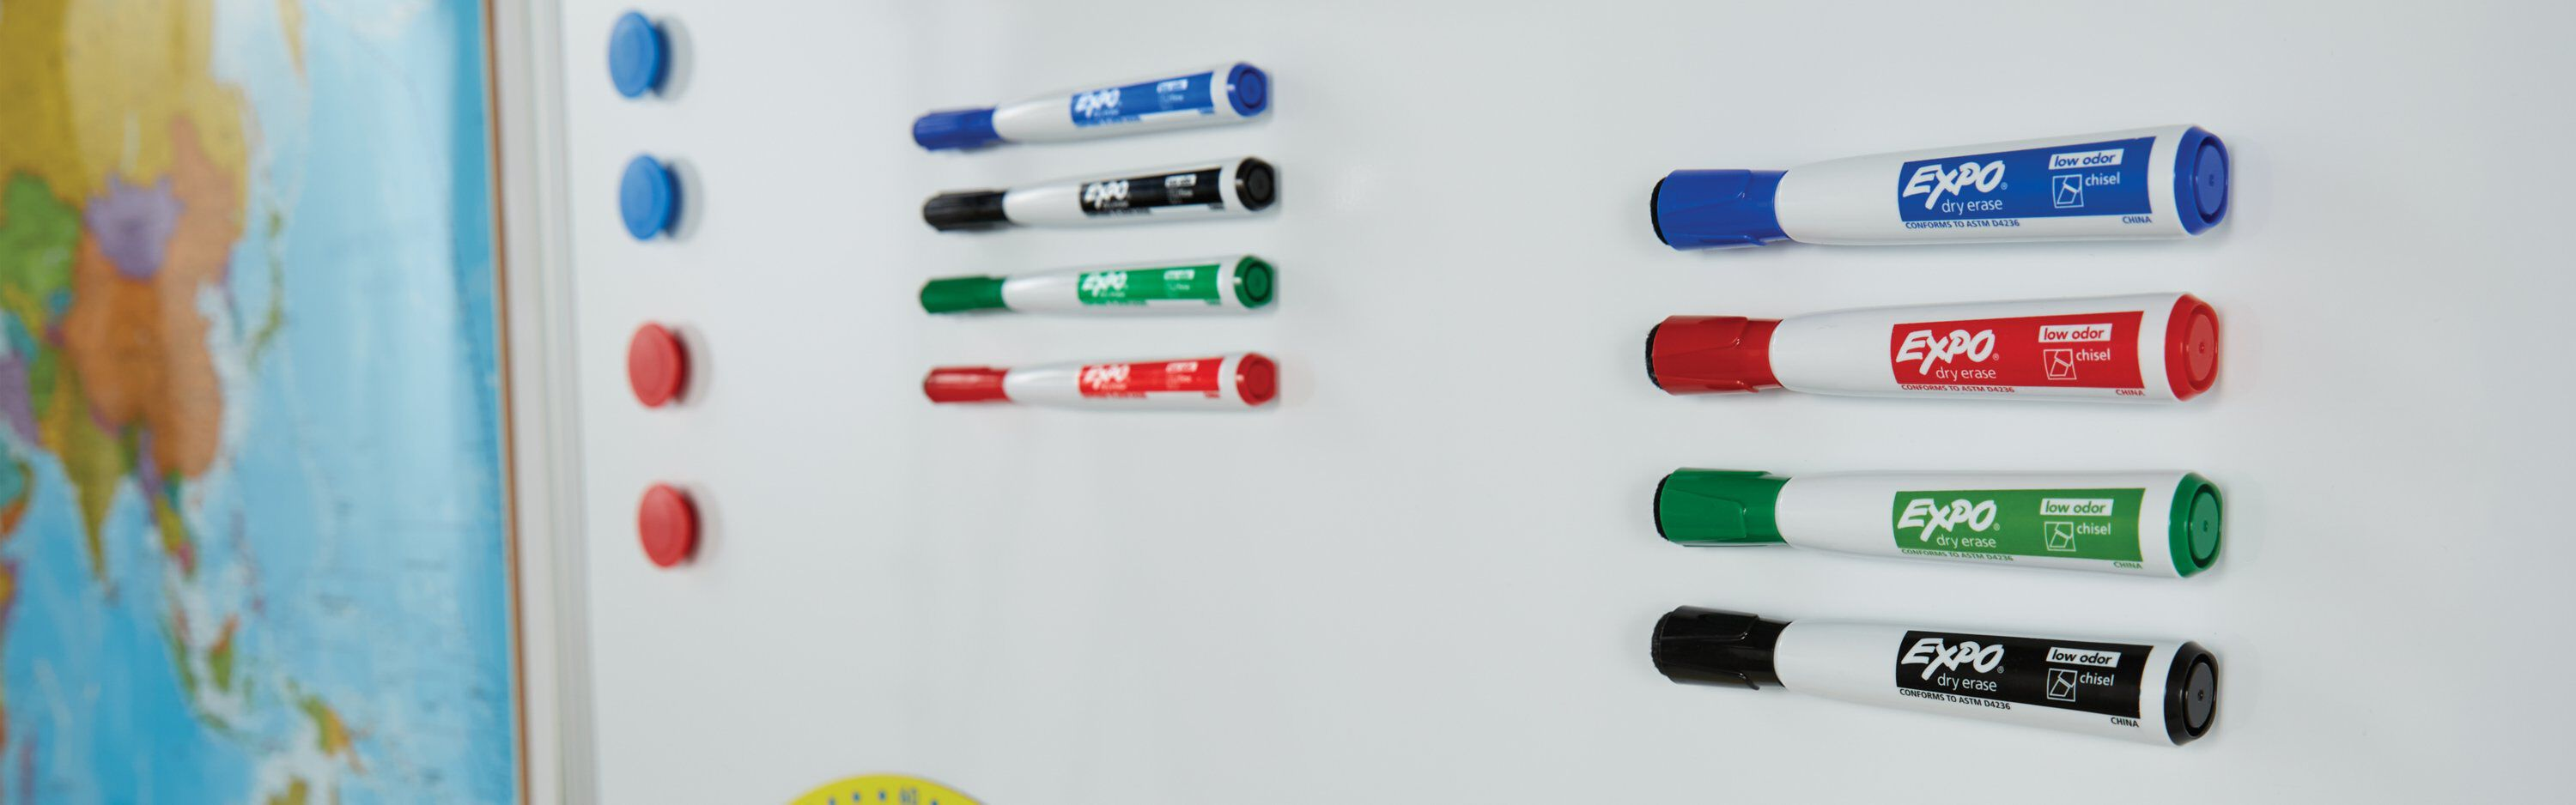 Expo markers on whiteboard